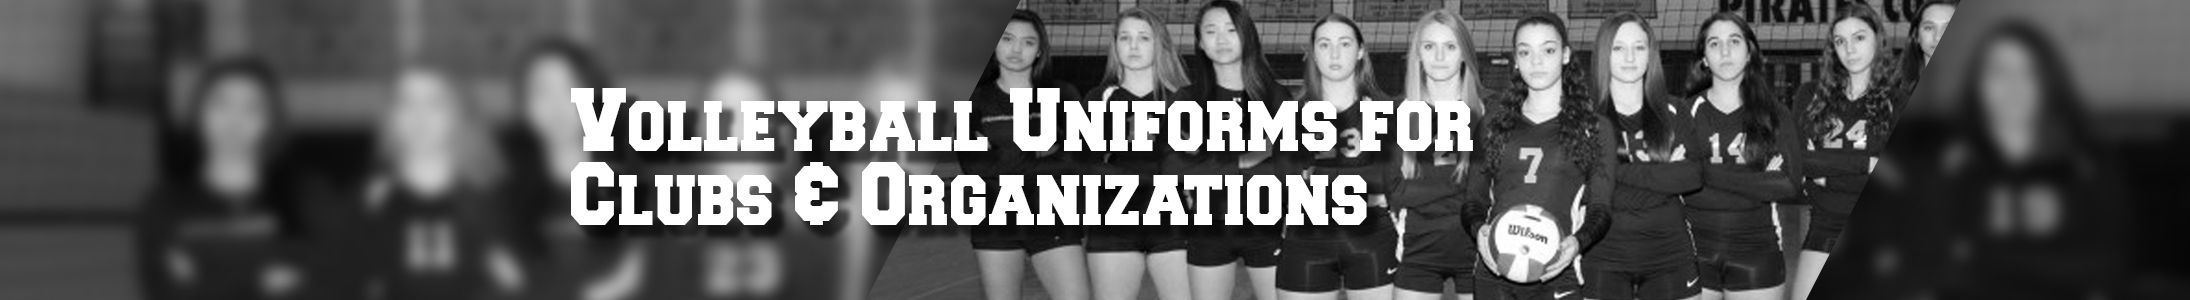 Volleyball-Uniforms-Clubs-Orgs-Header